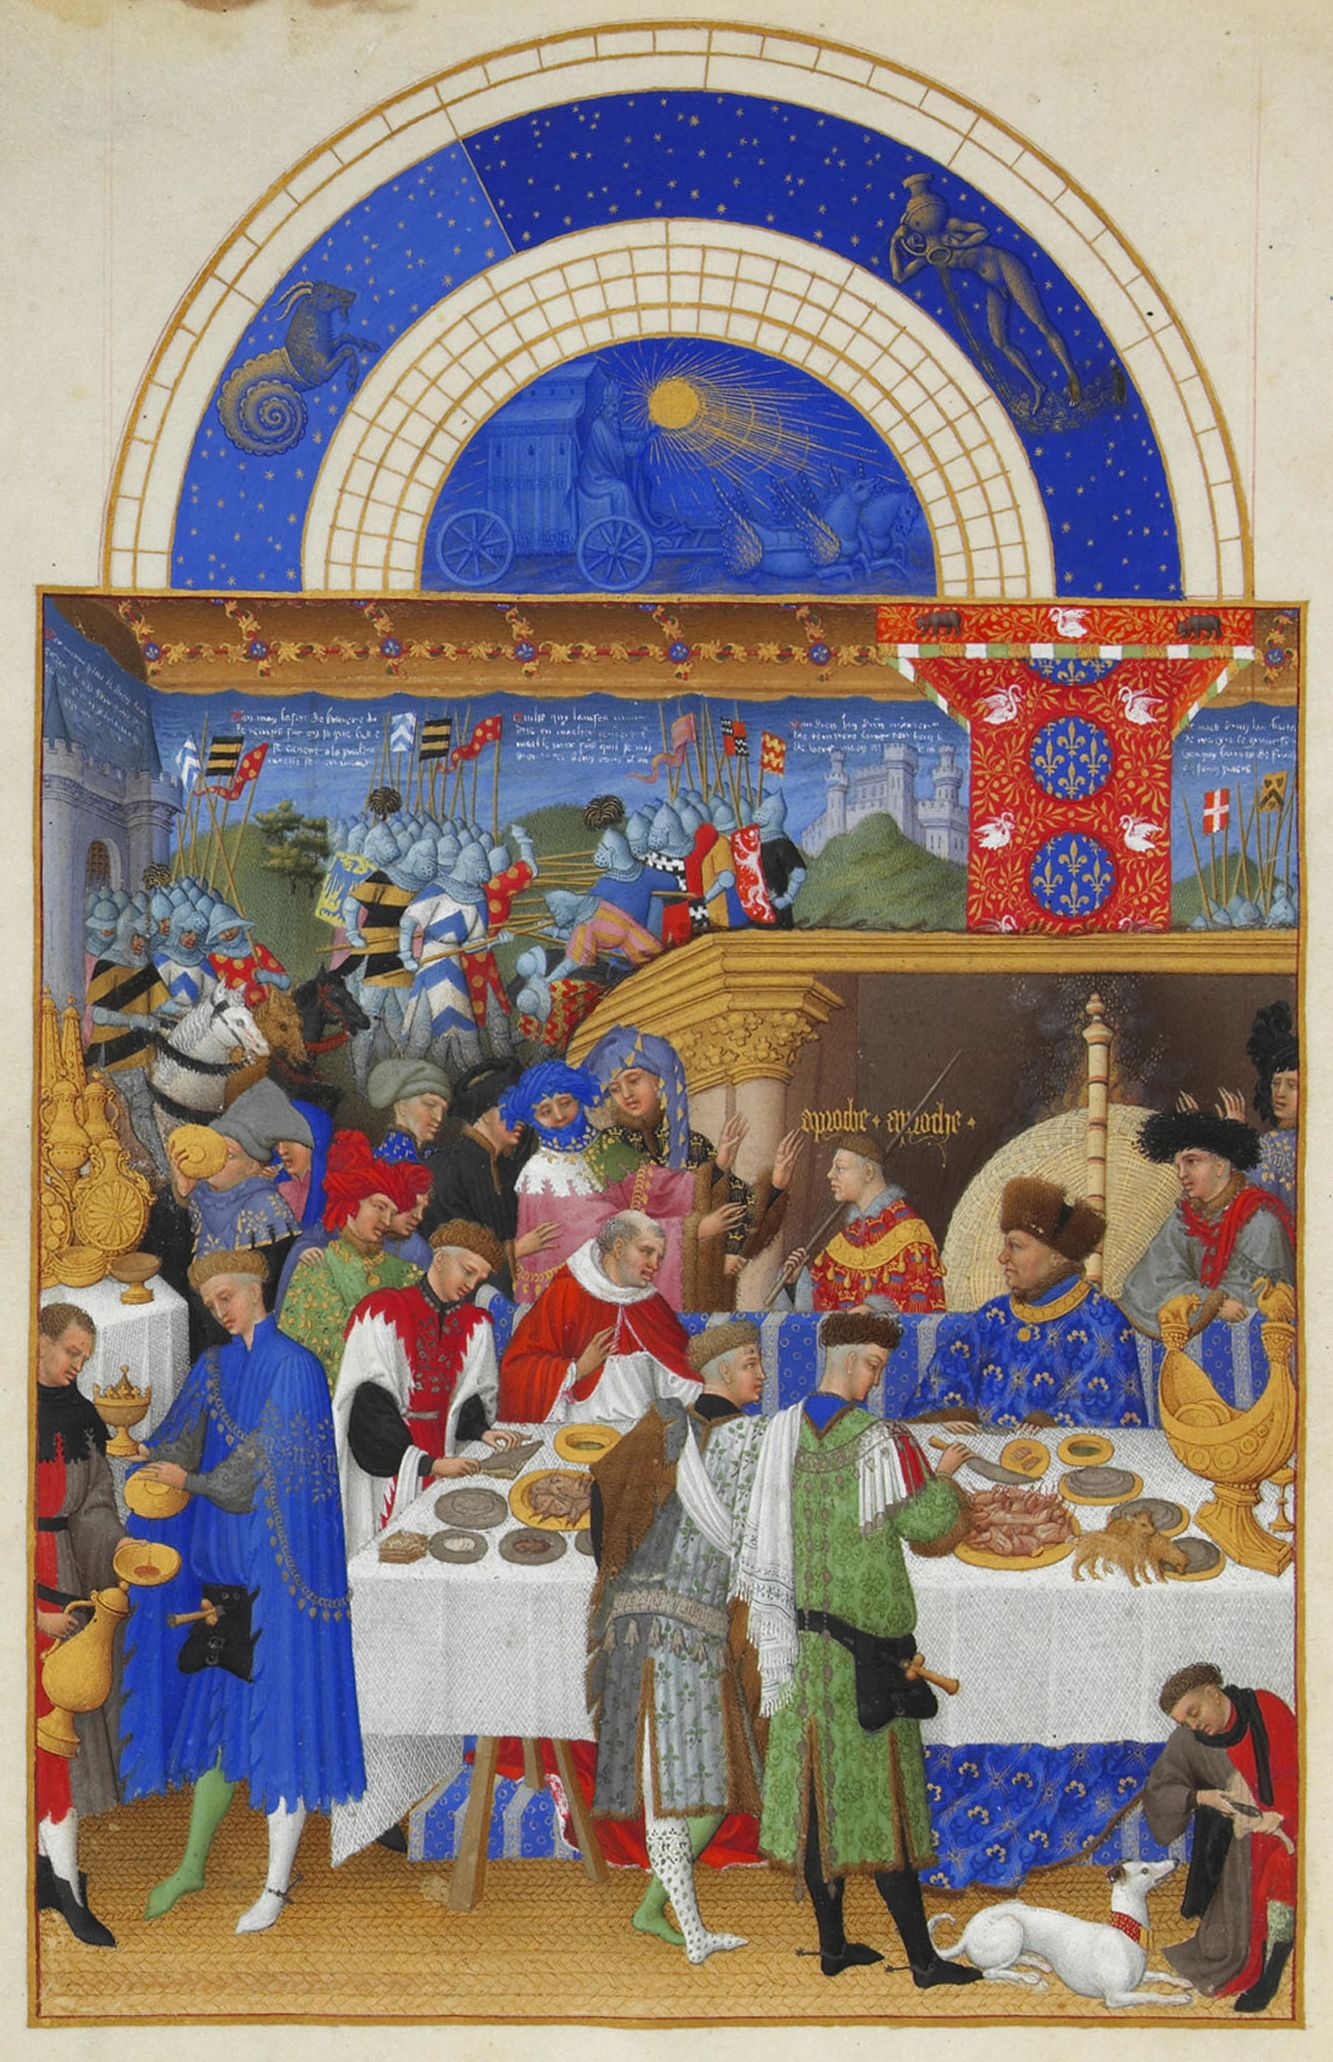 """Limbourg Brothers, """"The Book of Hours."""" The exchange of gifts at the court of the Duke de Berry in the New Year."""